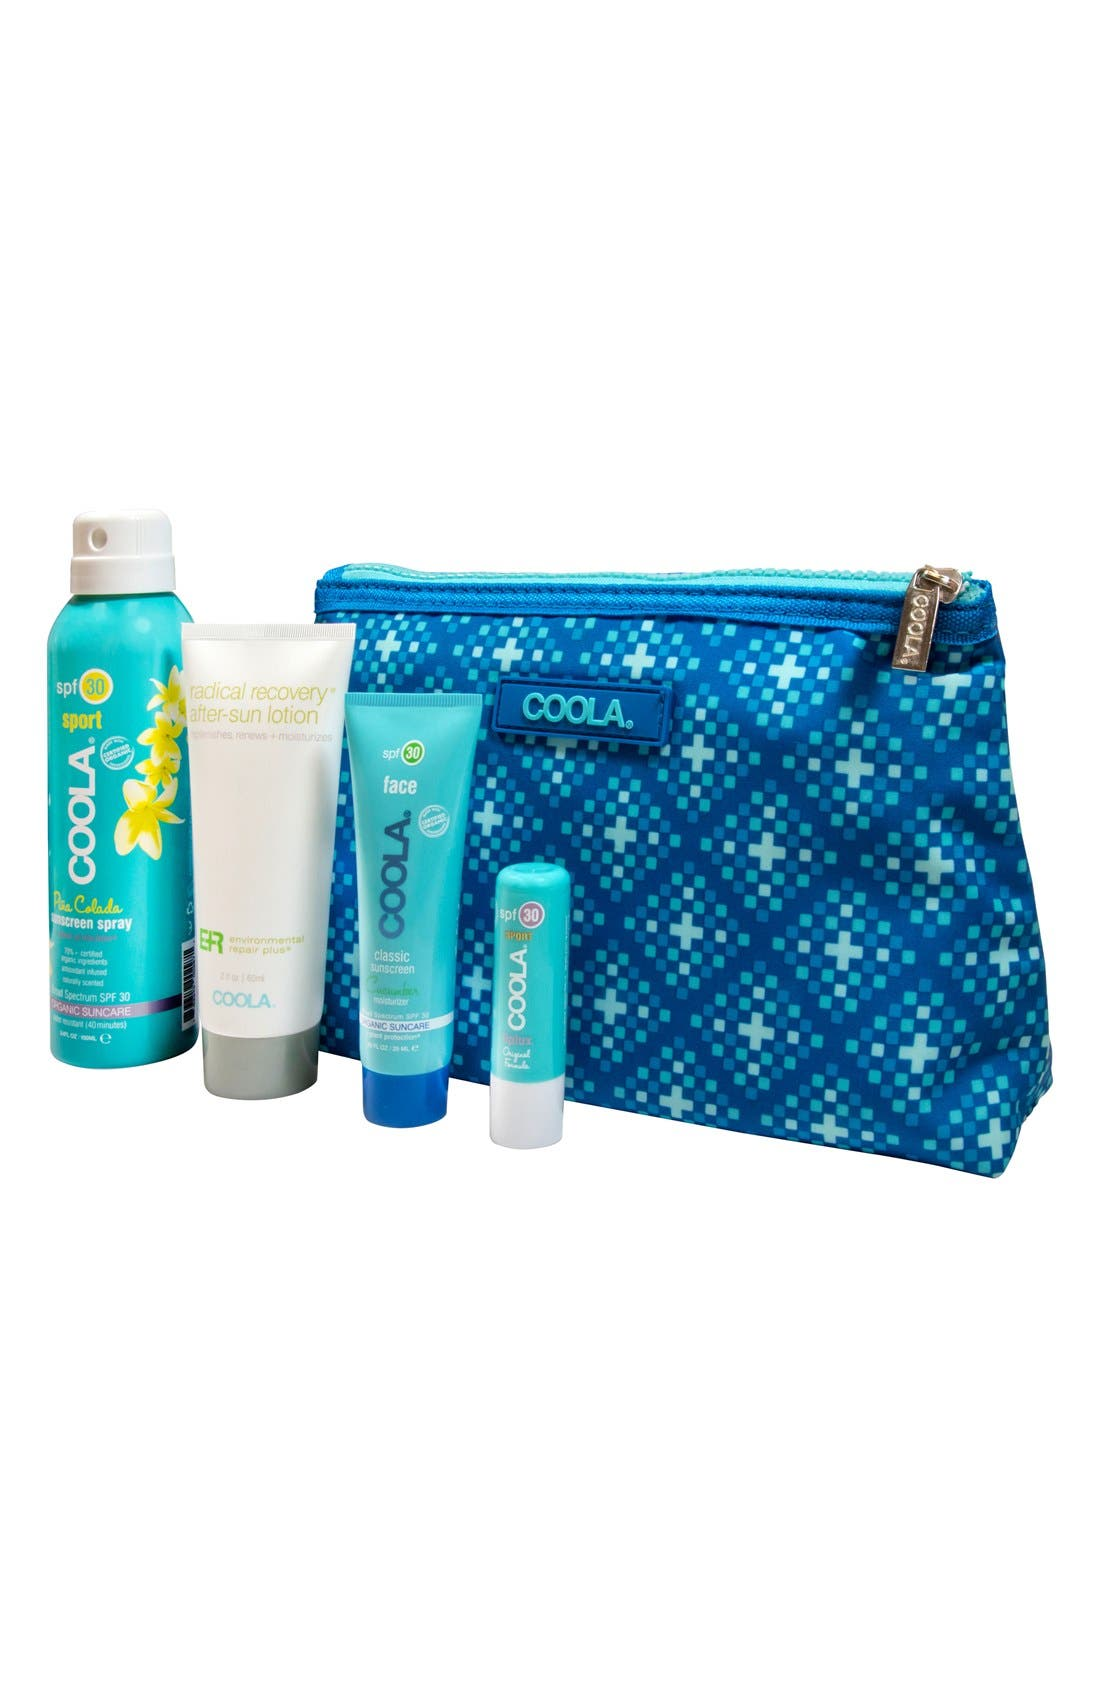 COOLA<sup>®</sup> Suncare Signature Travel Kit,                             Main thumbnail 1, color,                             NO COLOR